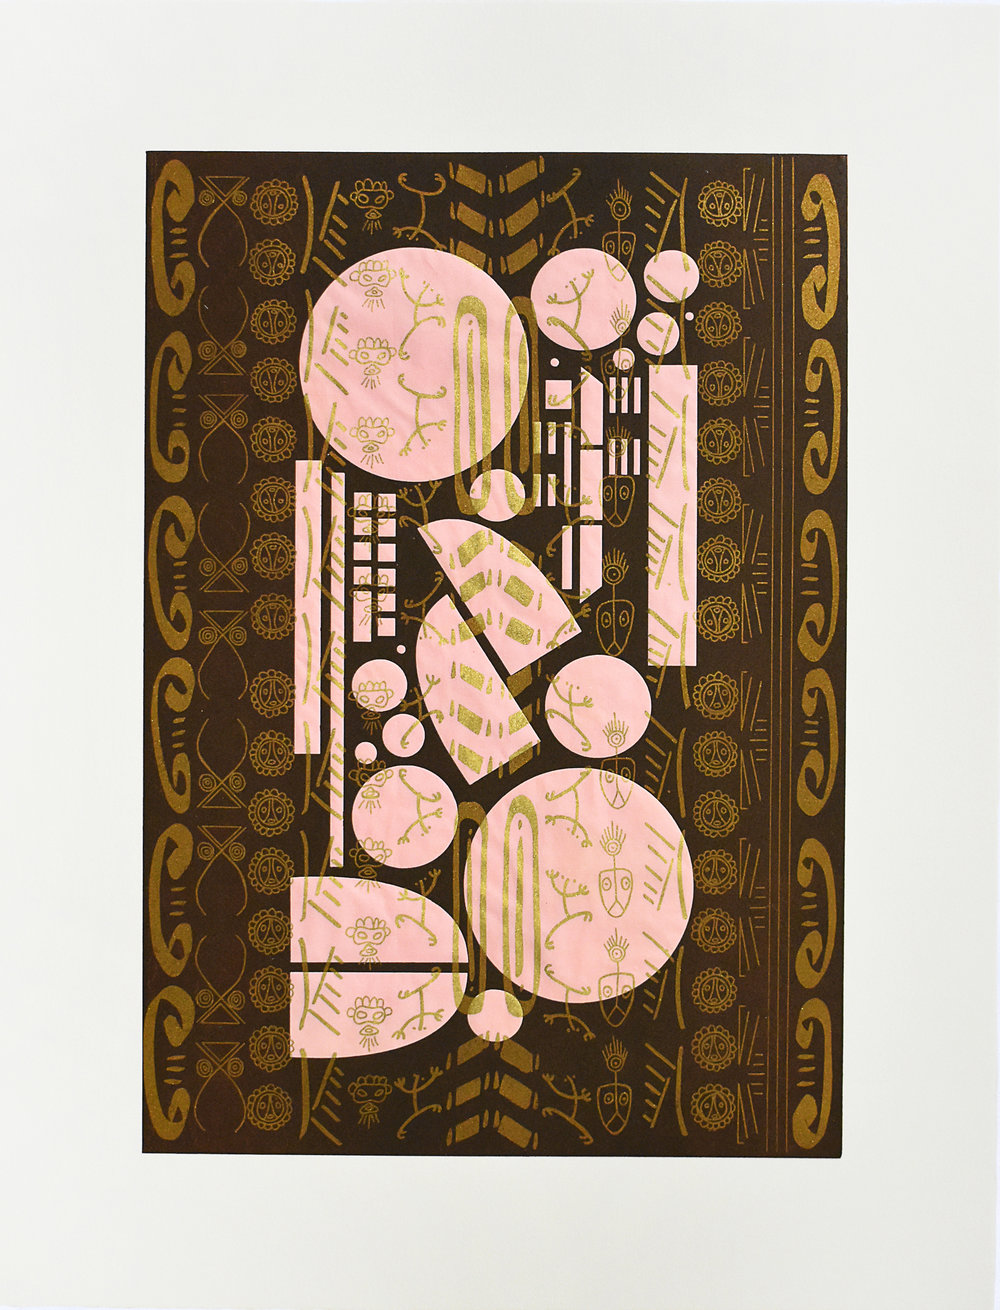 BrownPinkTaínoBlackGold  2018  Photolithograph printed in gold ink on pink Yatsuo paper, flocked with gold pigment. Overprinted with brown relief roll from laser cut plexiglass; 26 x 20 in. Edition: 10 Launch price up to number 3 = $700 ($1,200 thereafter)